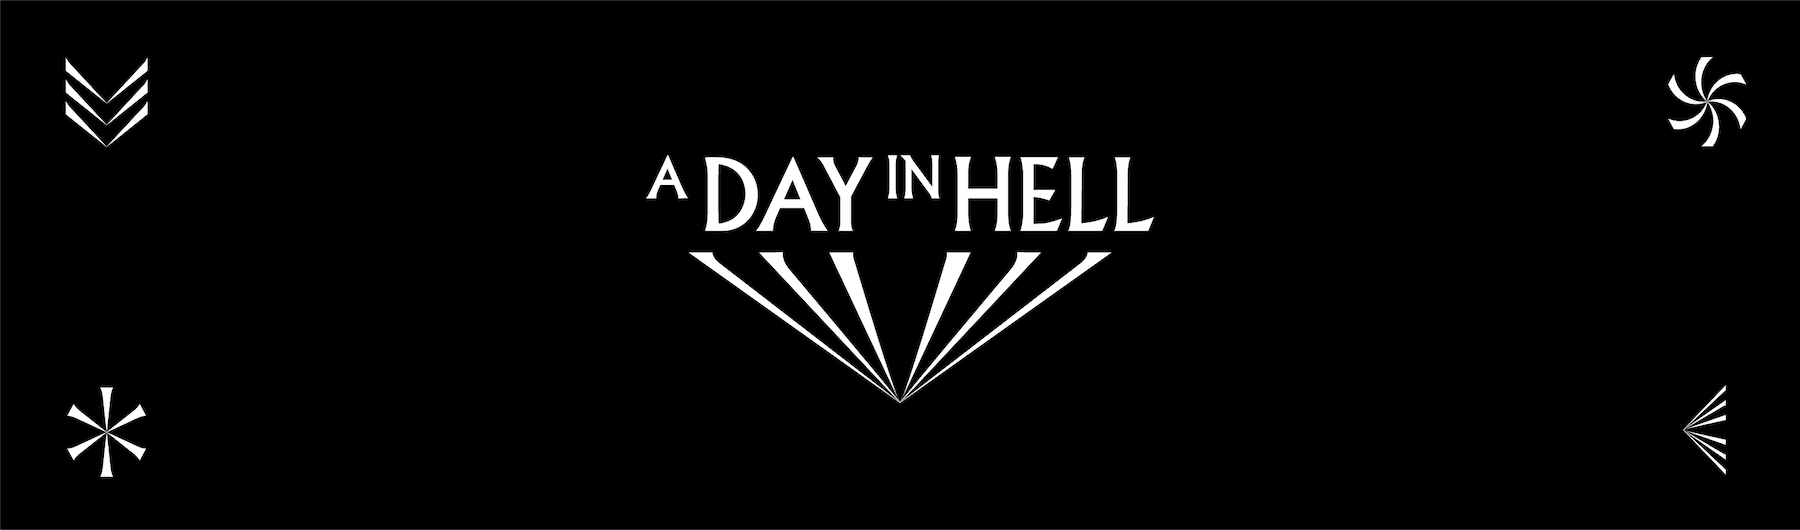 A Day in Hell NA 2021